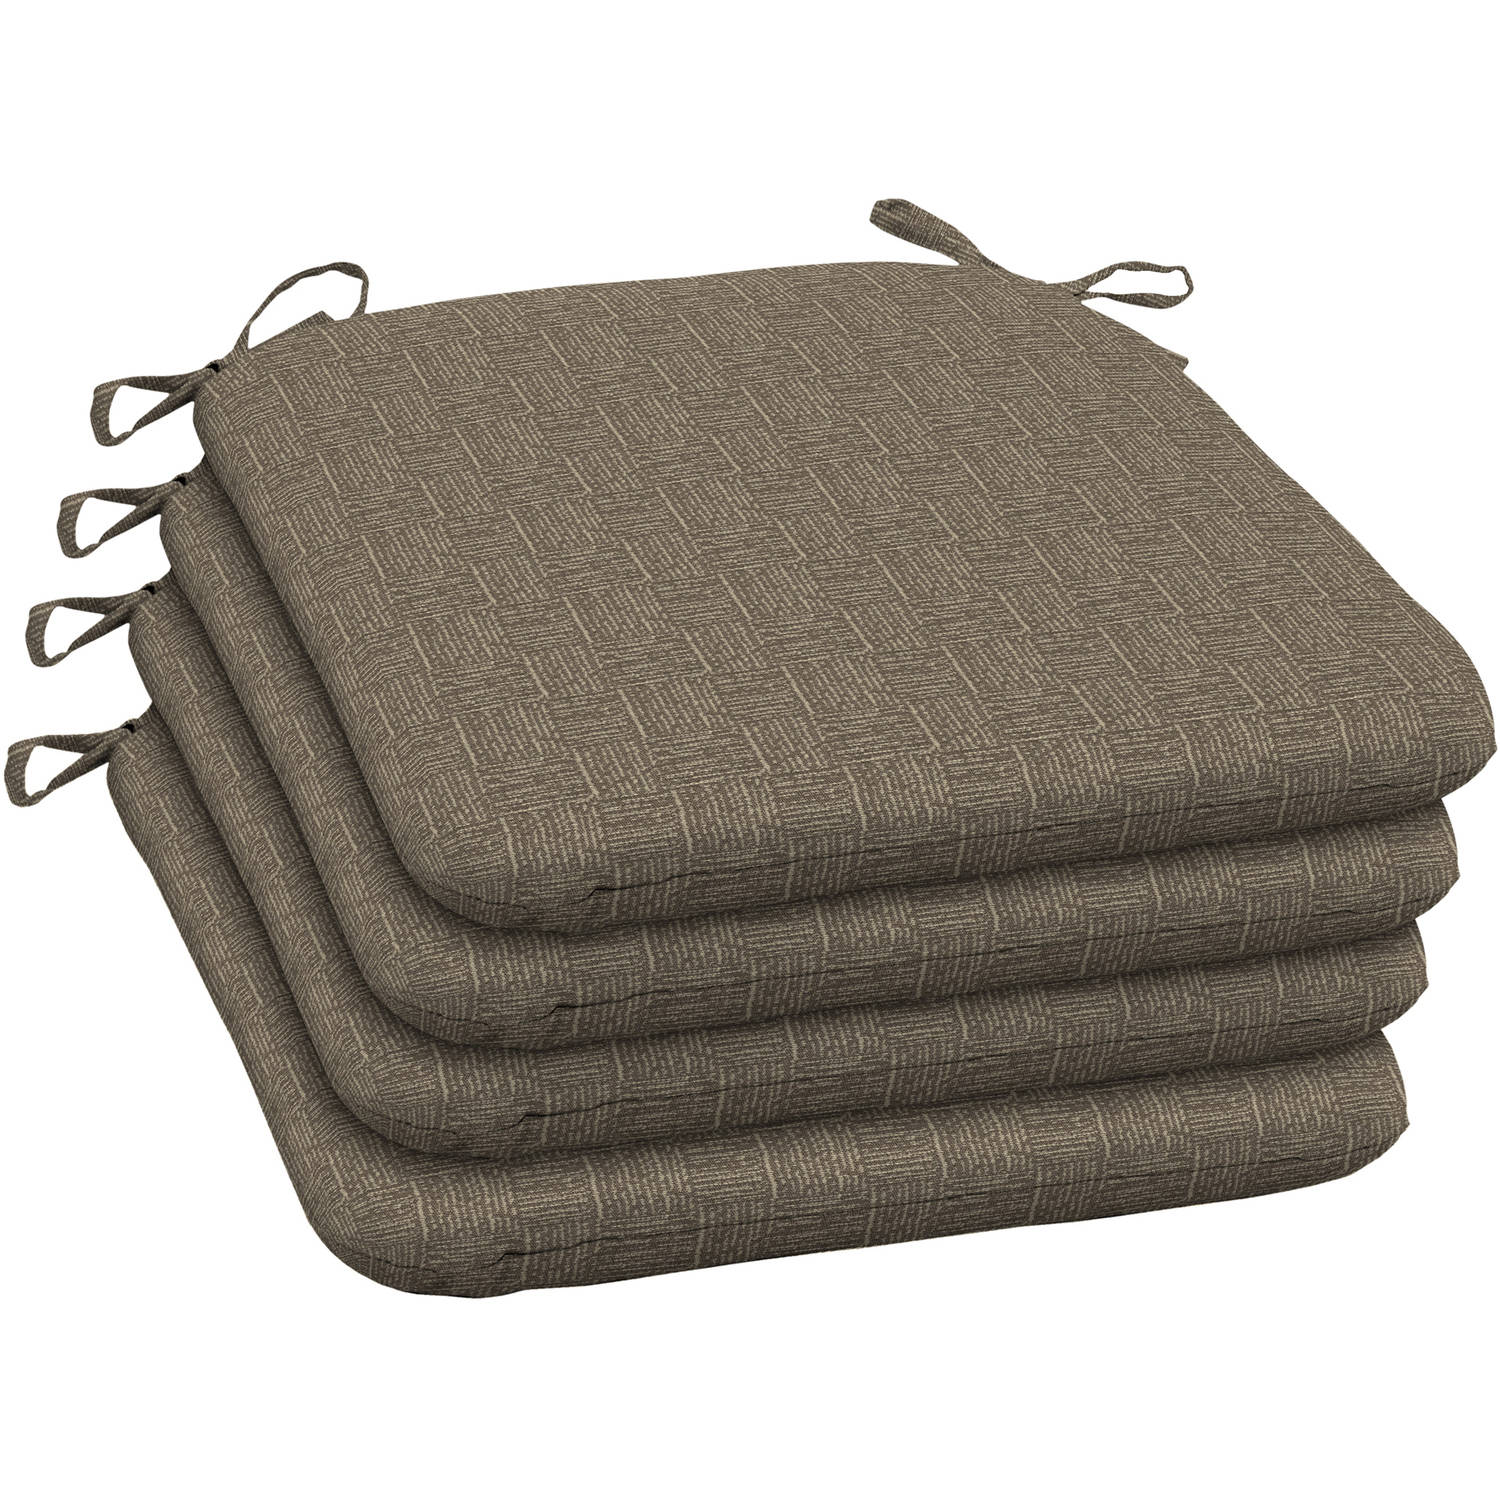 Arden Outdoors Brown Woven Wrought Iron Seat Pad, Set of 4